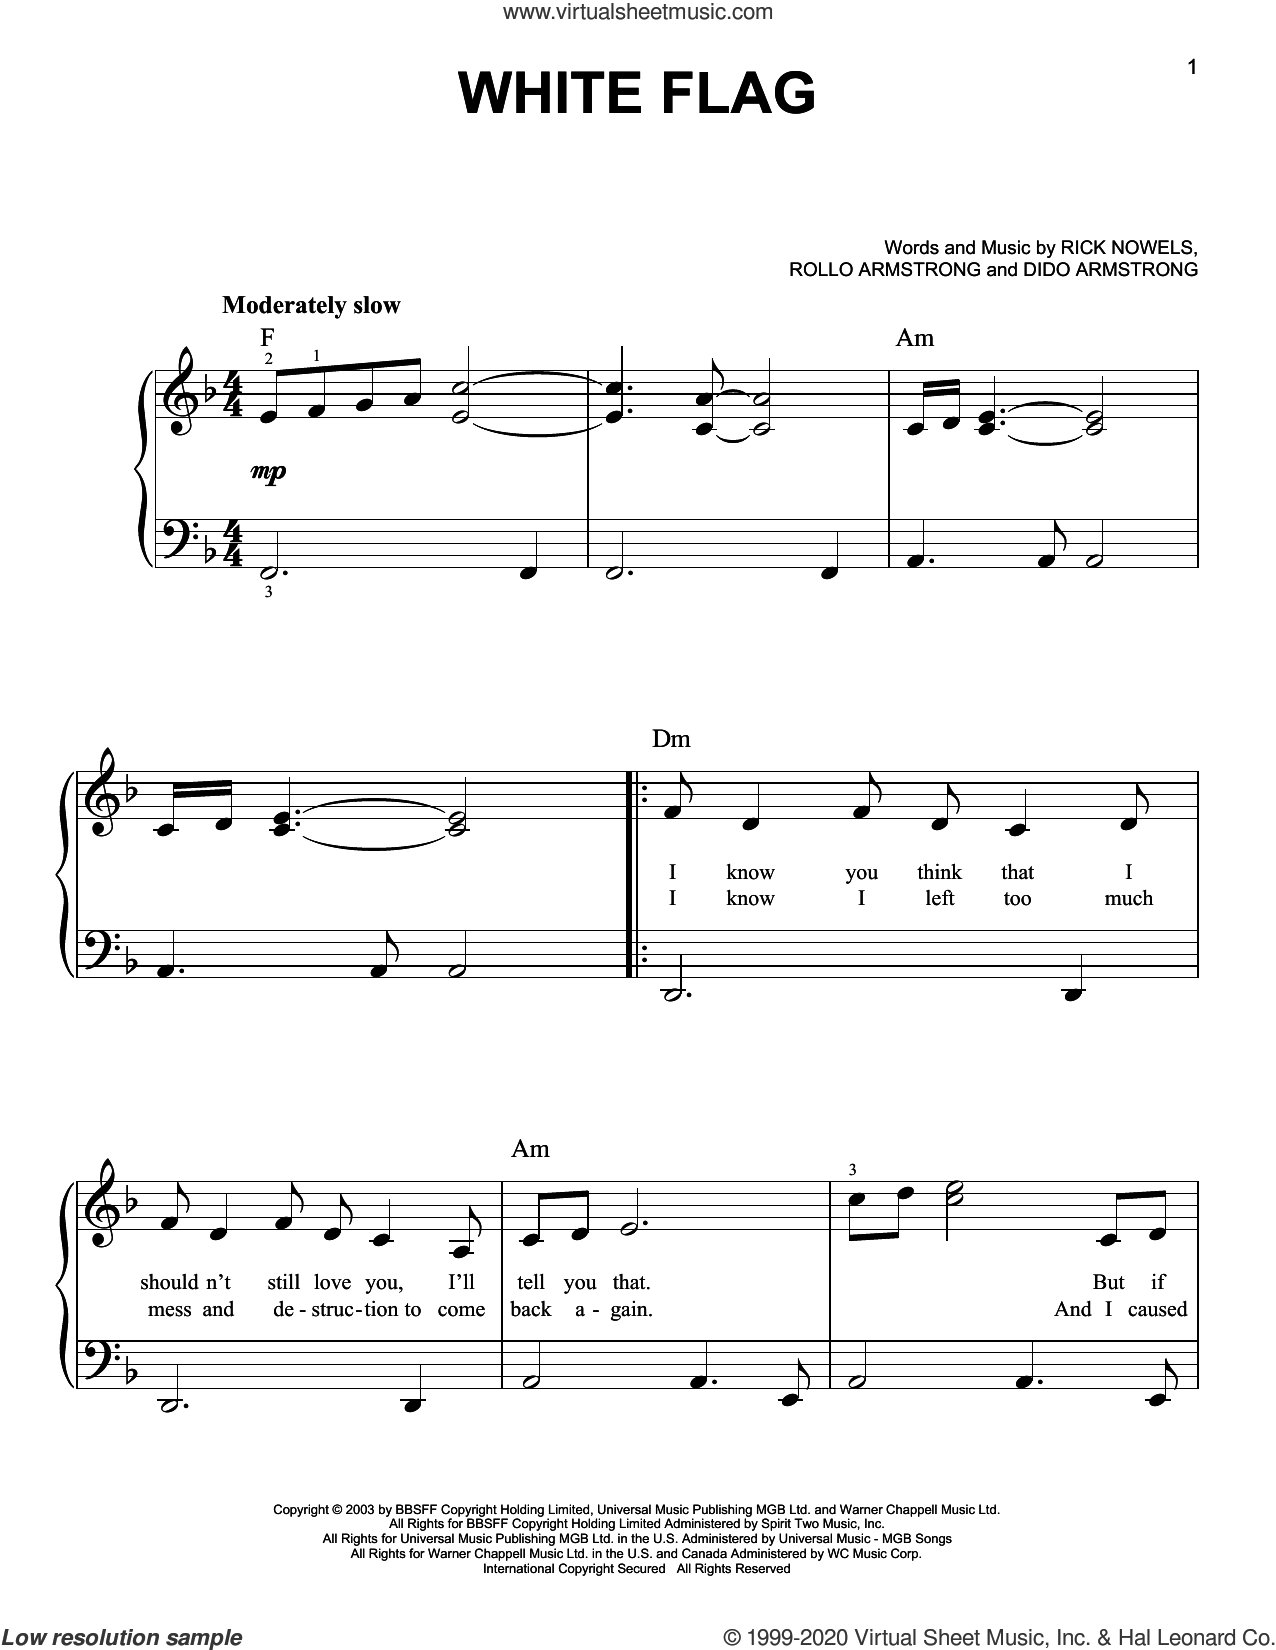 White Flag, (beginner) sheet music for piano solo by Rick Nowels, Dido Armstrong and Rollo Armstrong, beginner skill level